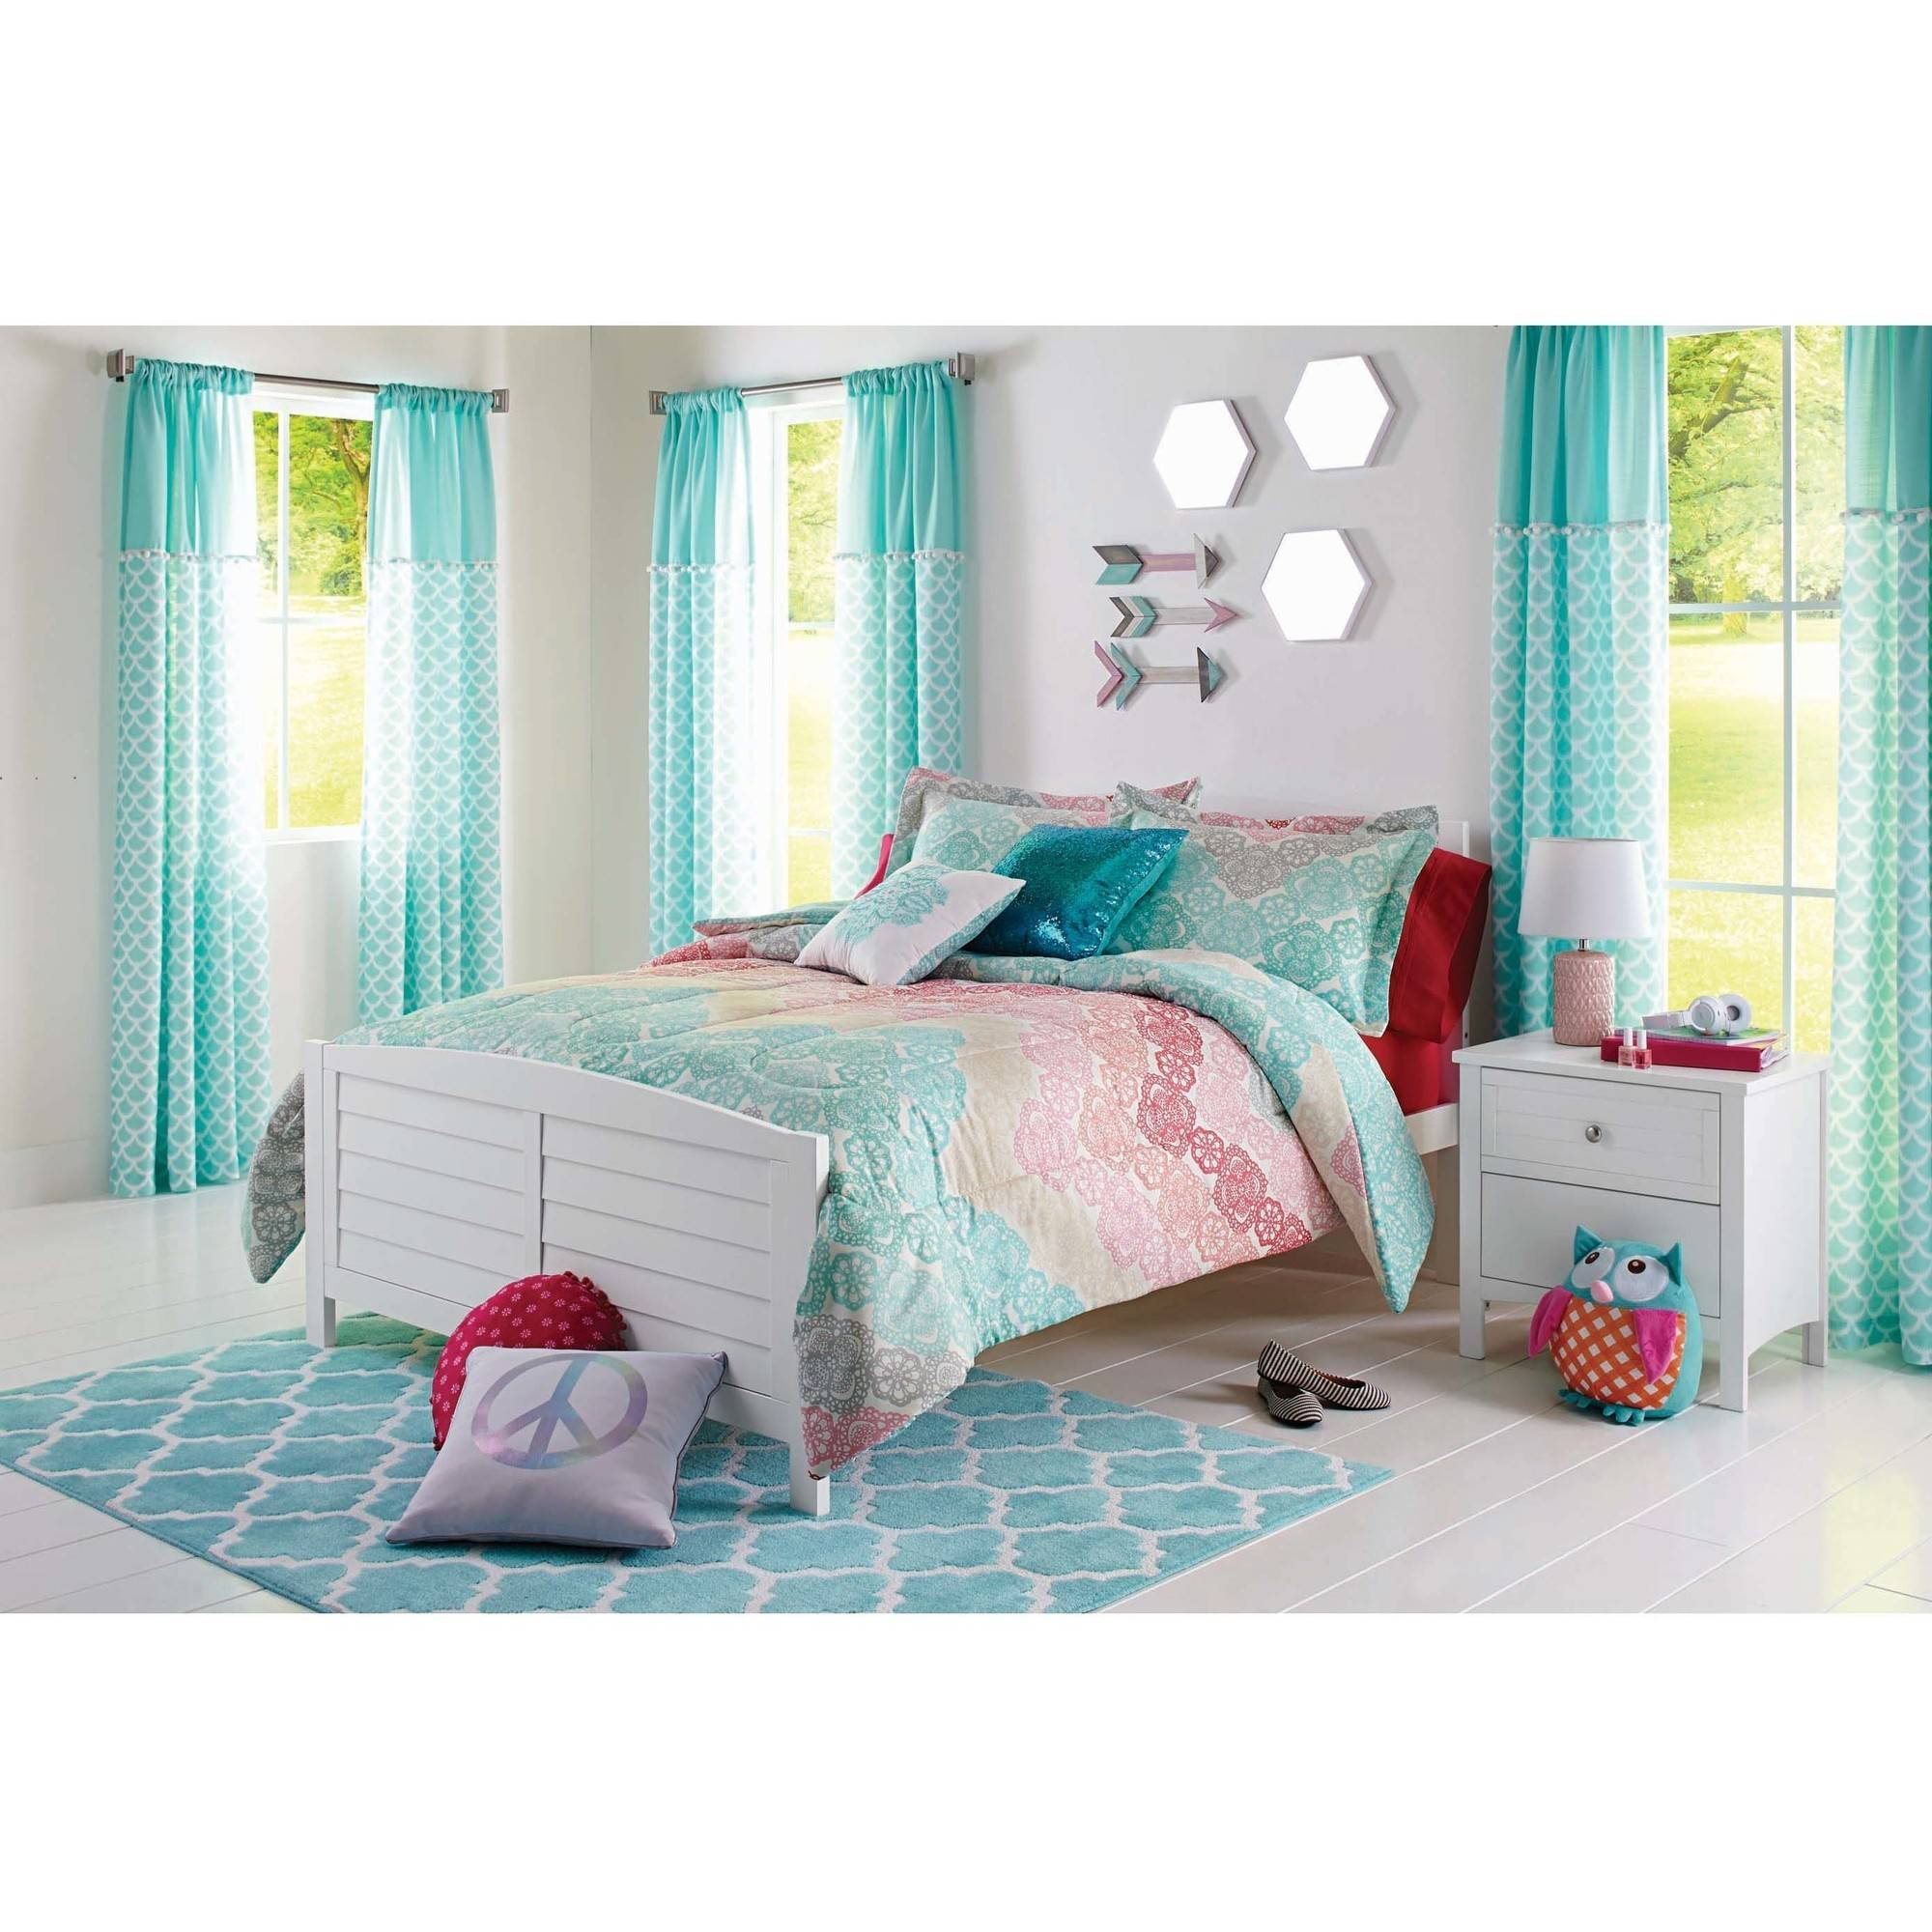 Kids\' Rooms - Walmart.com